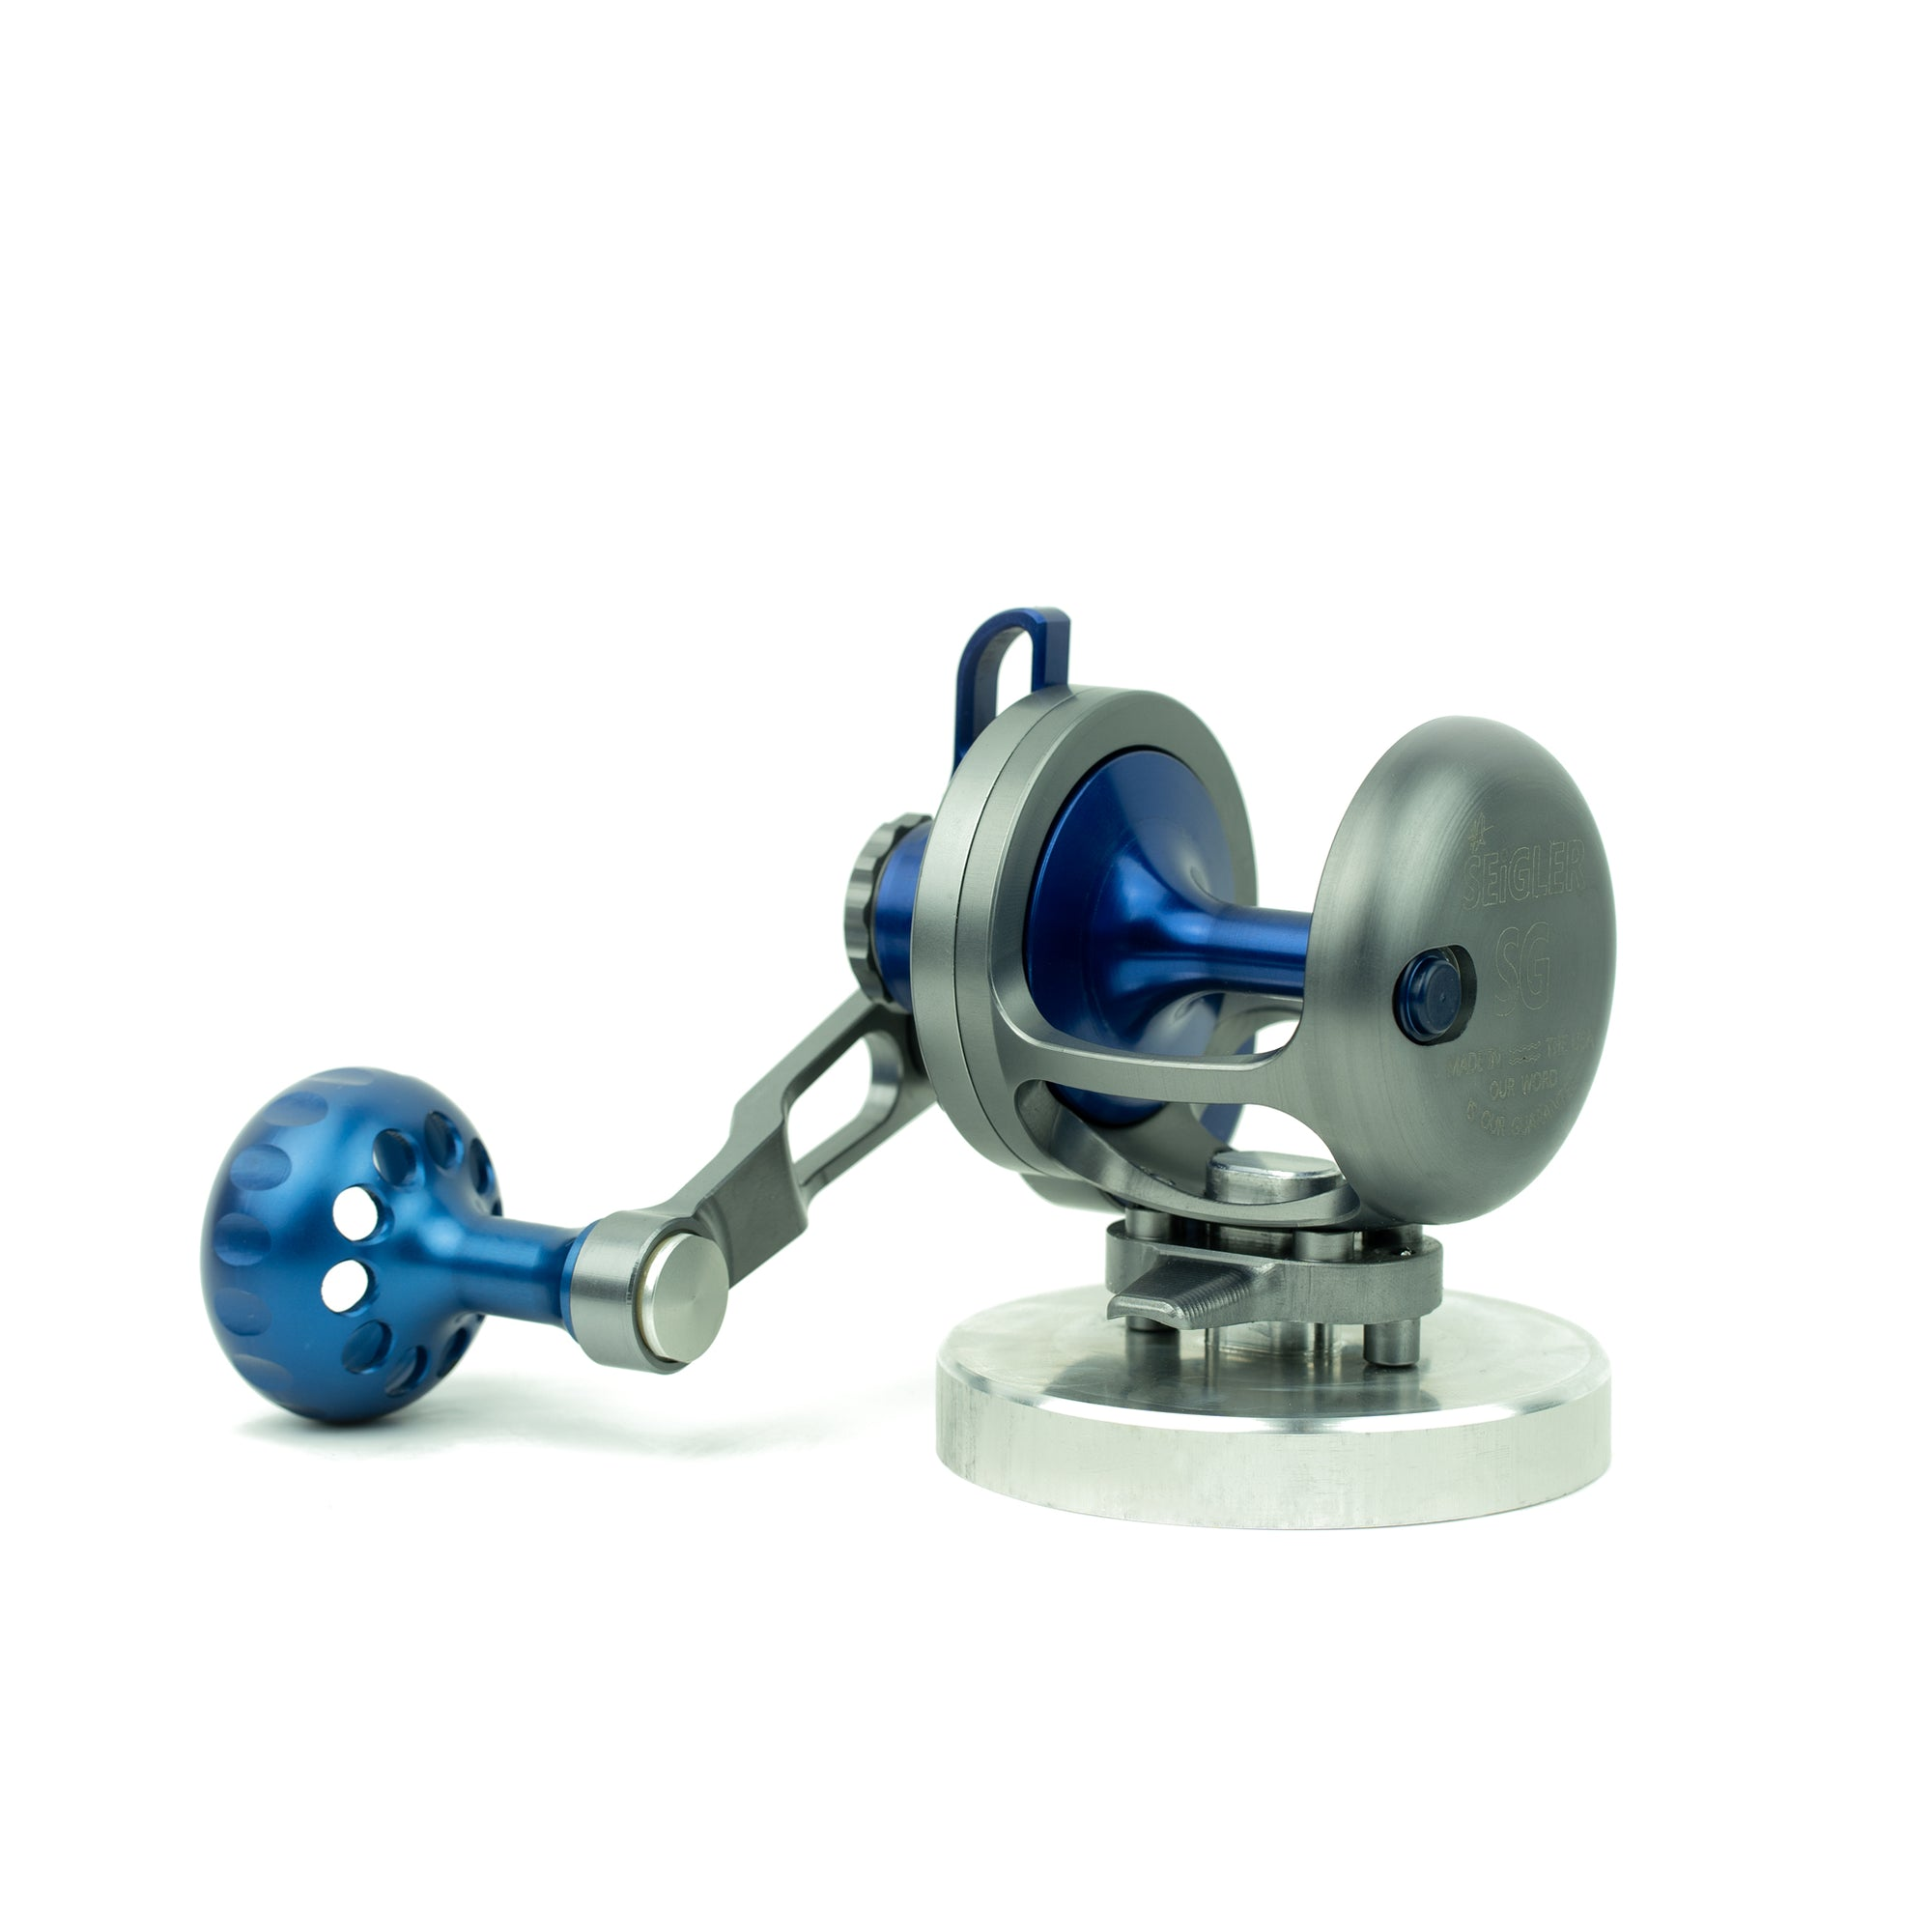 Reel stand for Seigler conventional fishing reels.